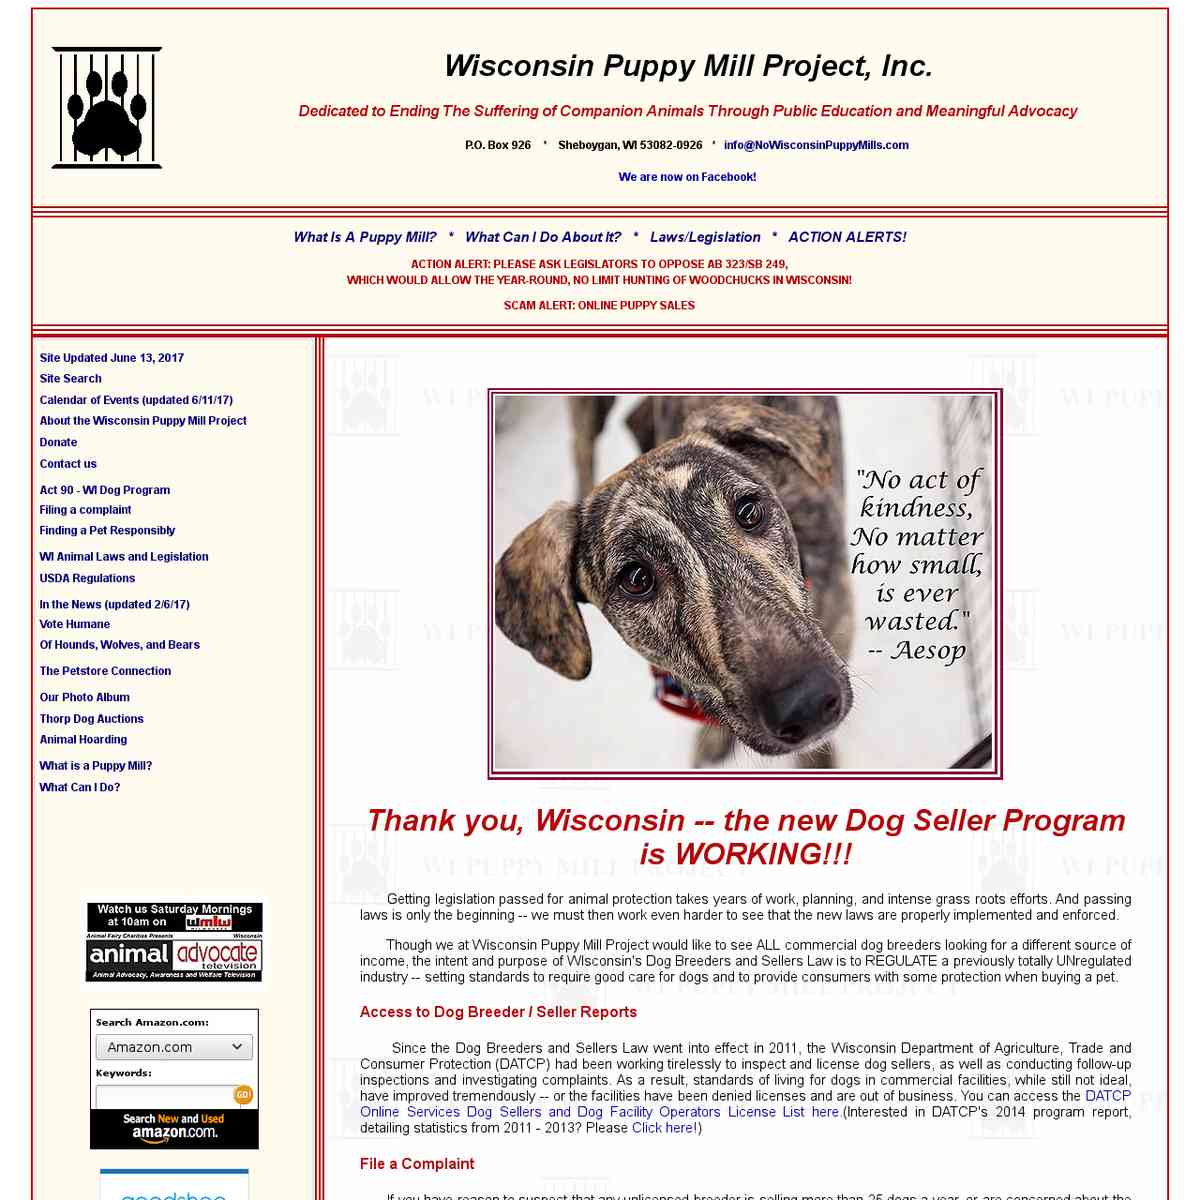 Wisconsin Puppy Mill Project, Inc